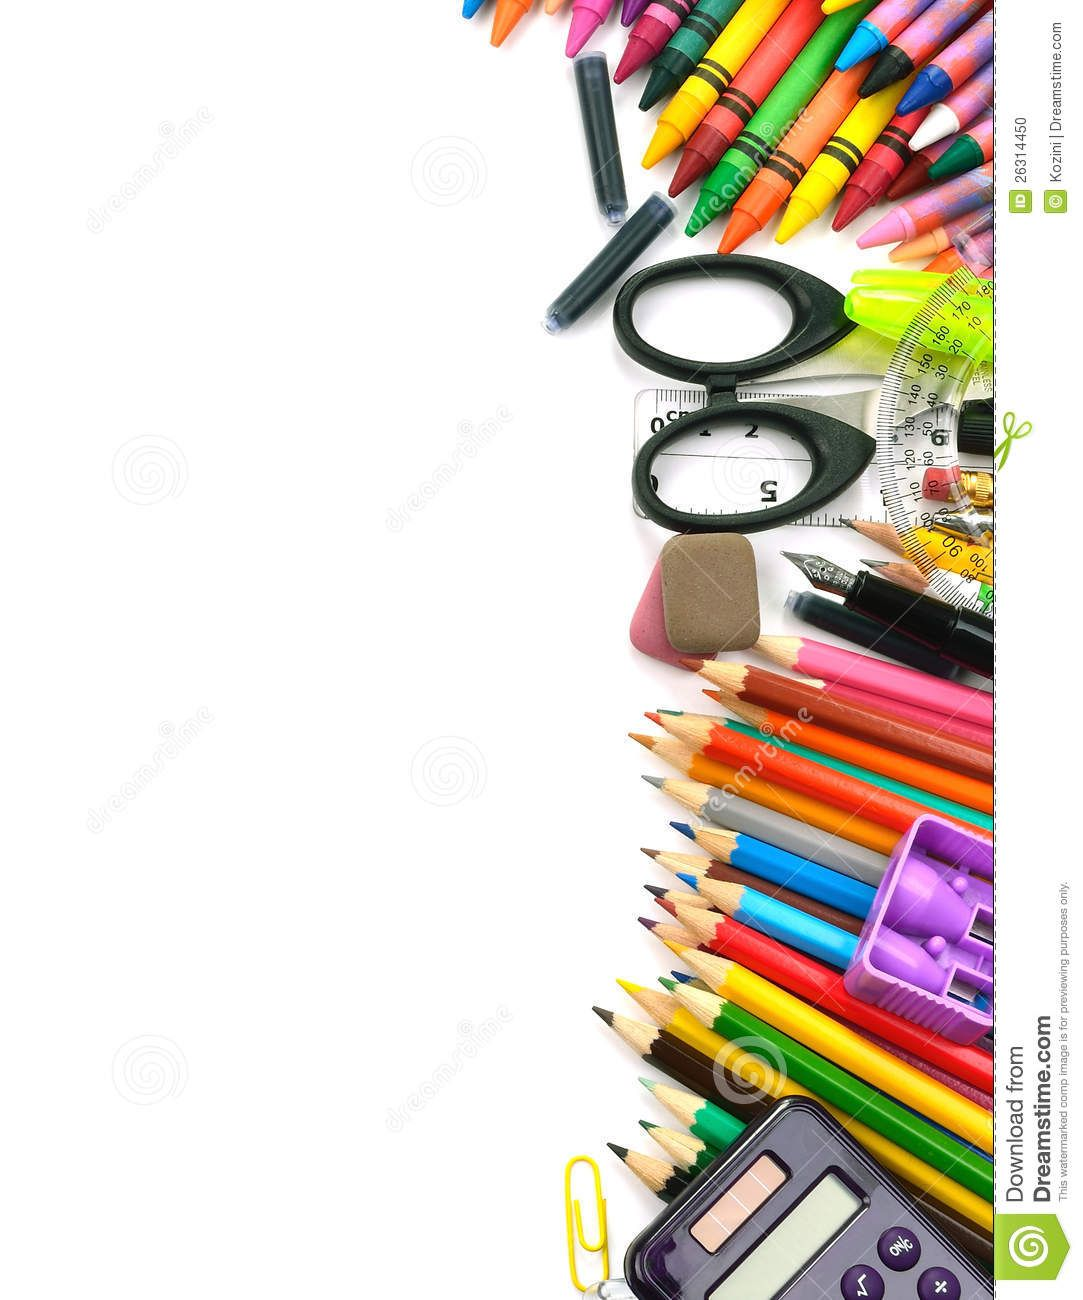 Clipart office supplies graphic black and white download School and office supplies. | Office Supplies | School images ... graphic black and white download